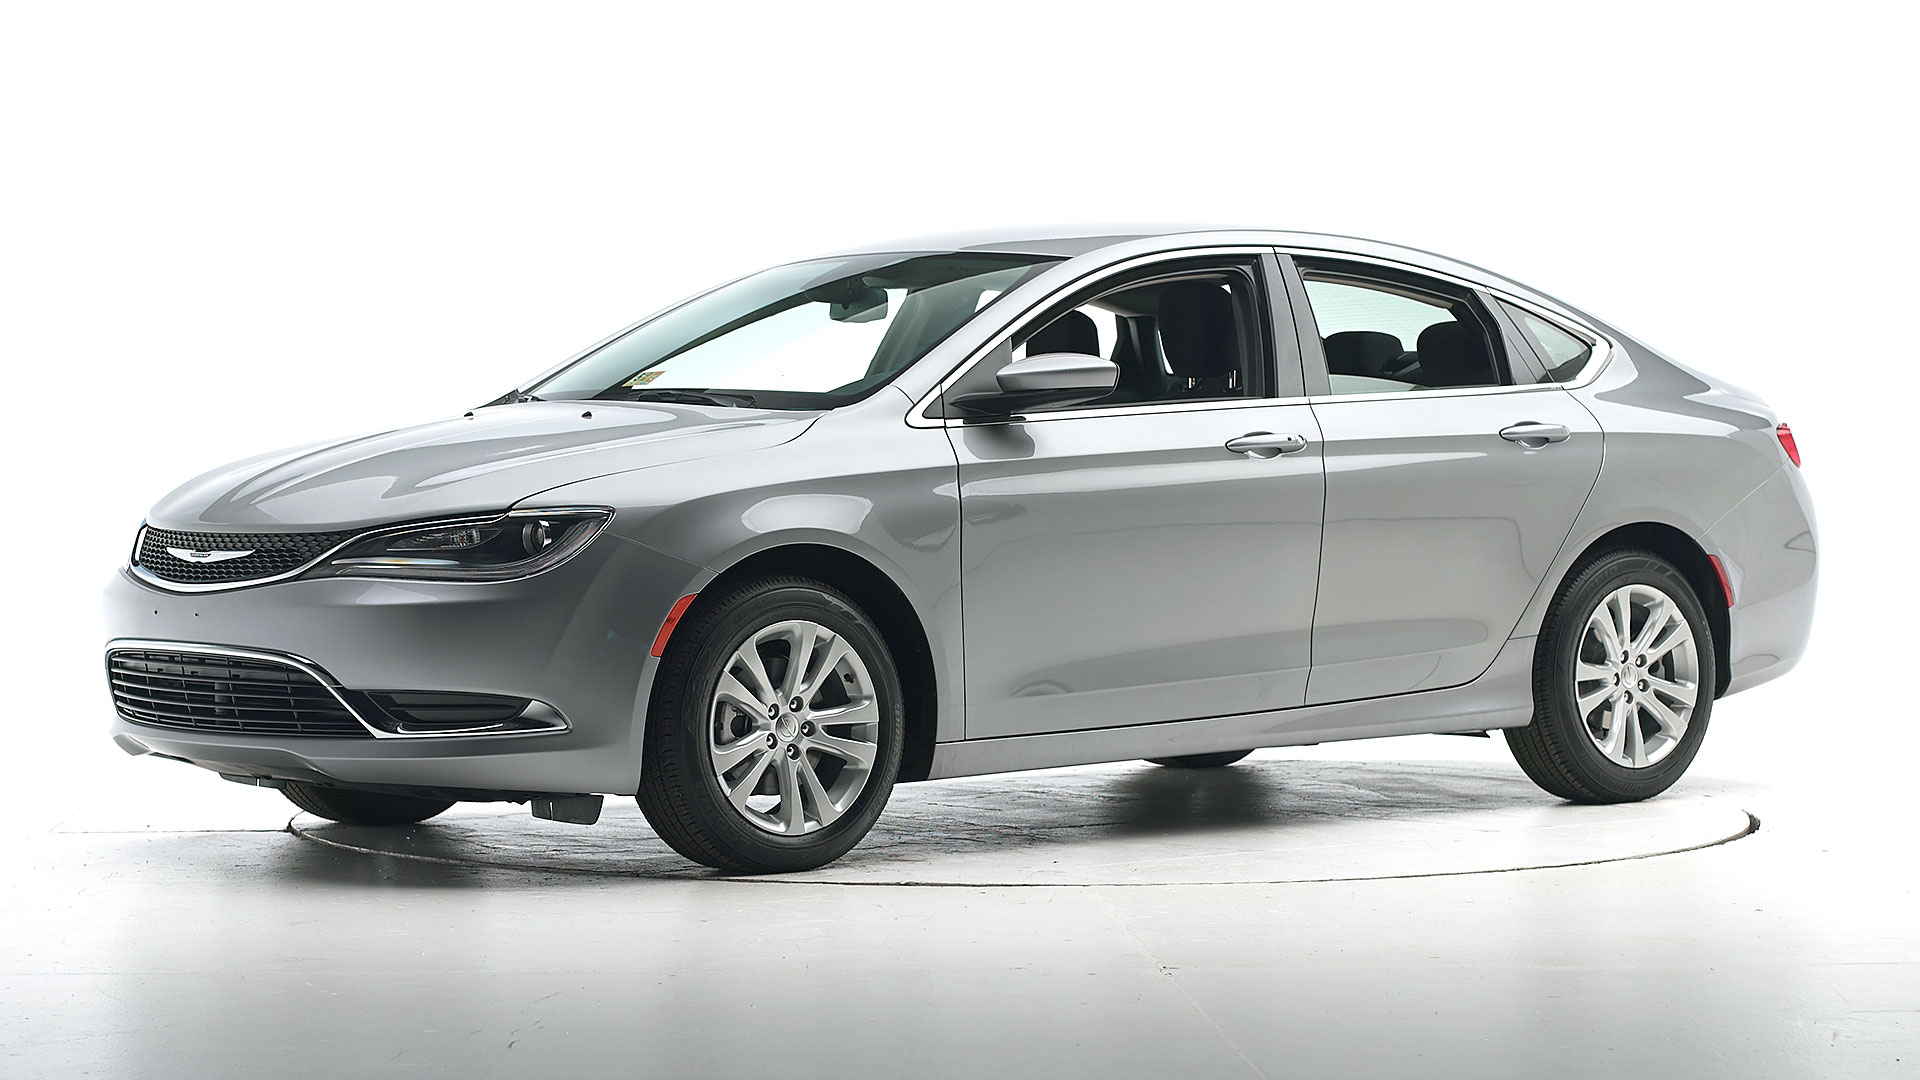 2016 Chrysler 200 4-door sedan